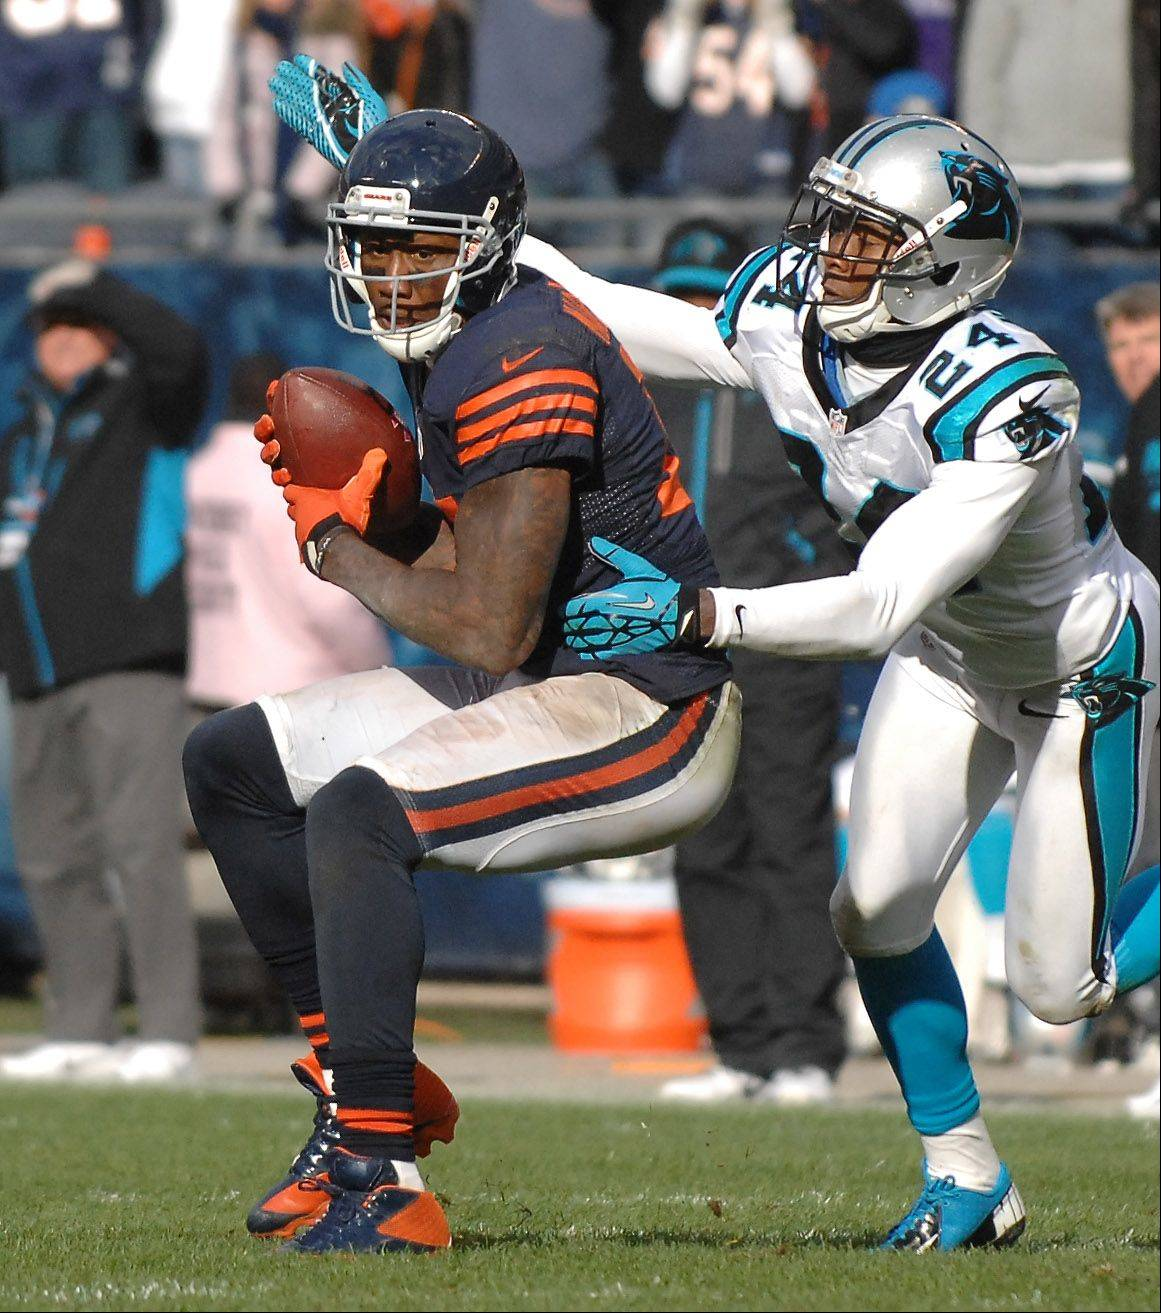 Chicago Bears wide receiver Brandon Marshall (15) makes a catch on the game-winning drive as Carolina Panthers defensive back Josh Norman (24) defends during Sunday's game at Soldier Field in Chicago.